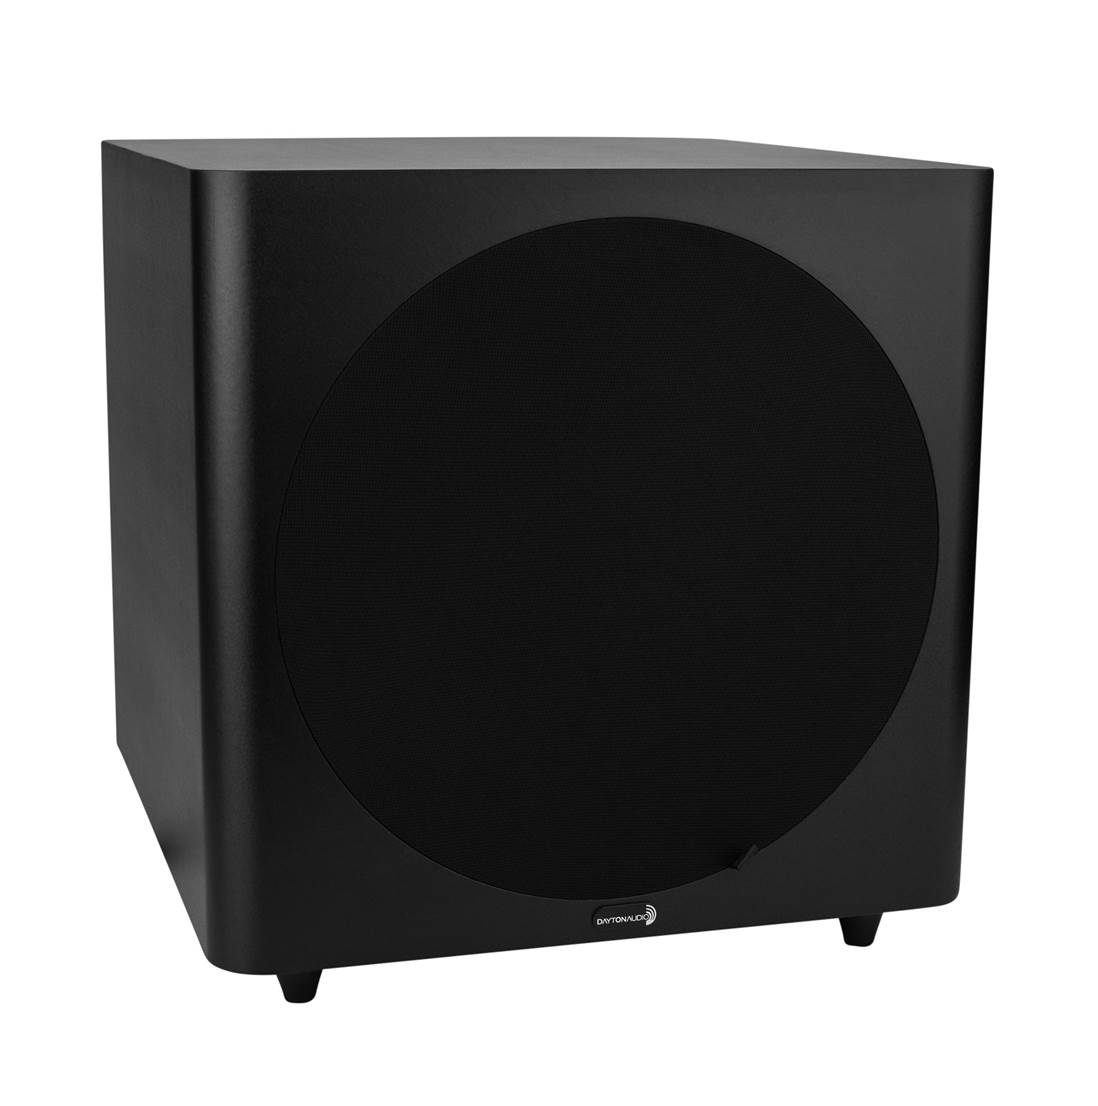 "Dayton Audio 12"" 120 Watt Powered Subwoofer"